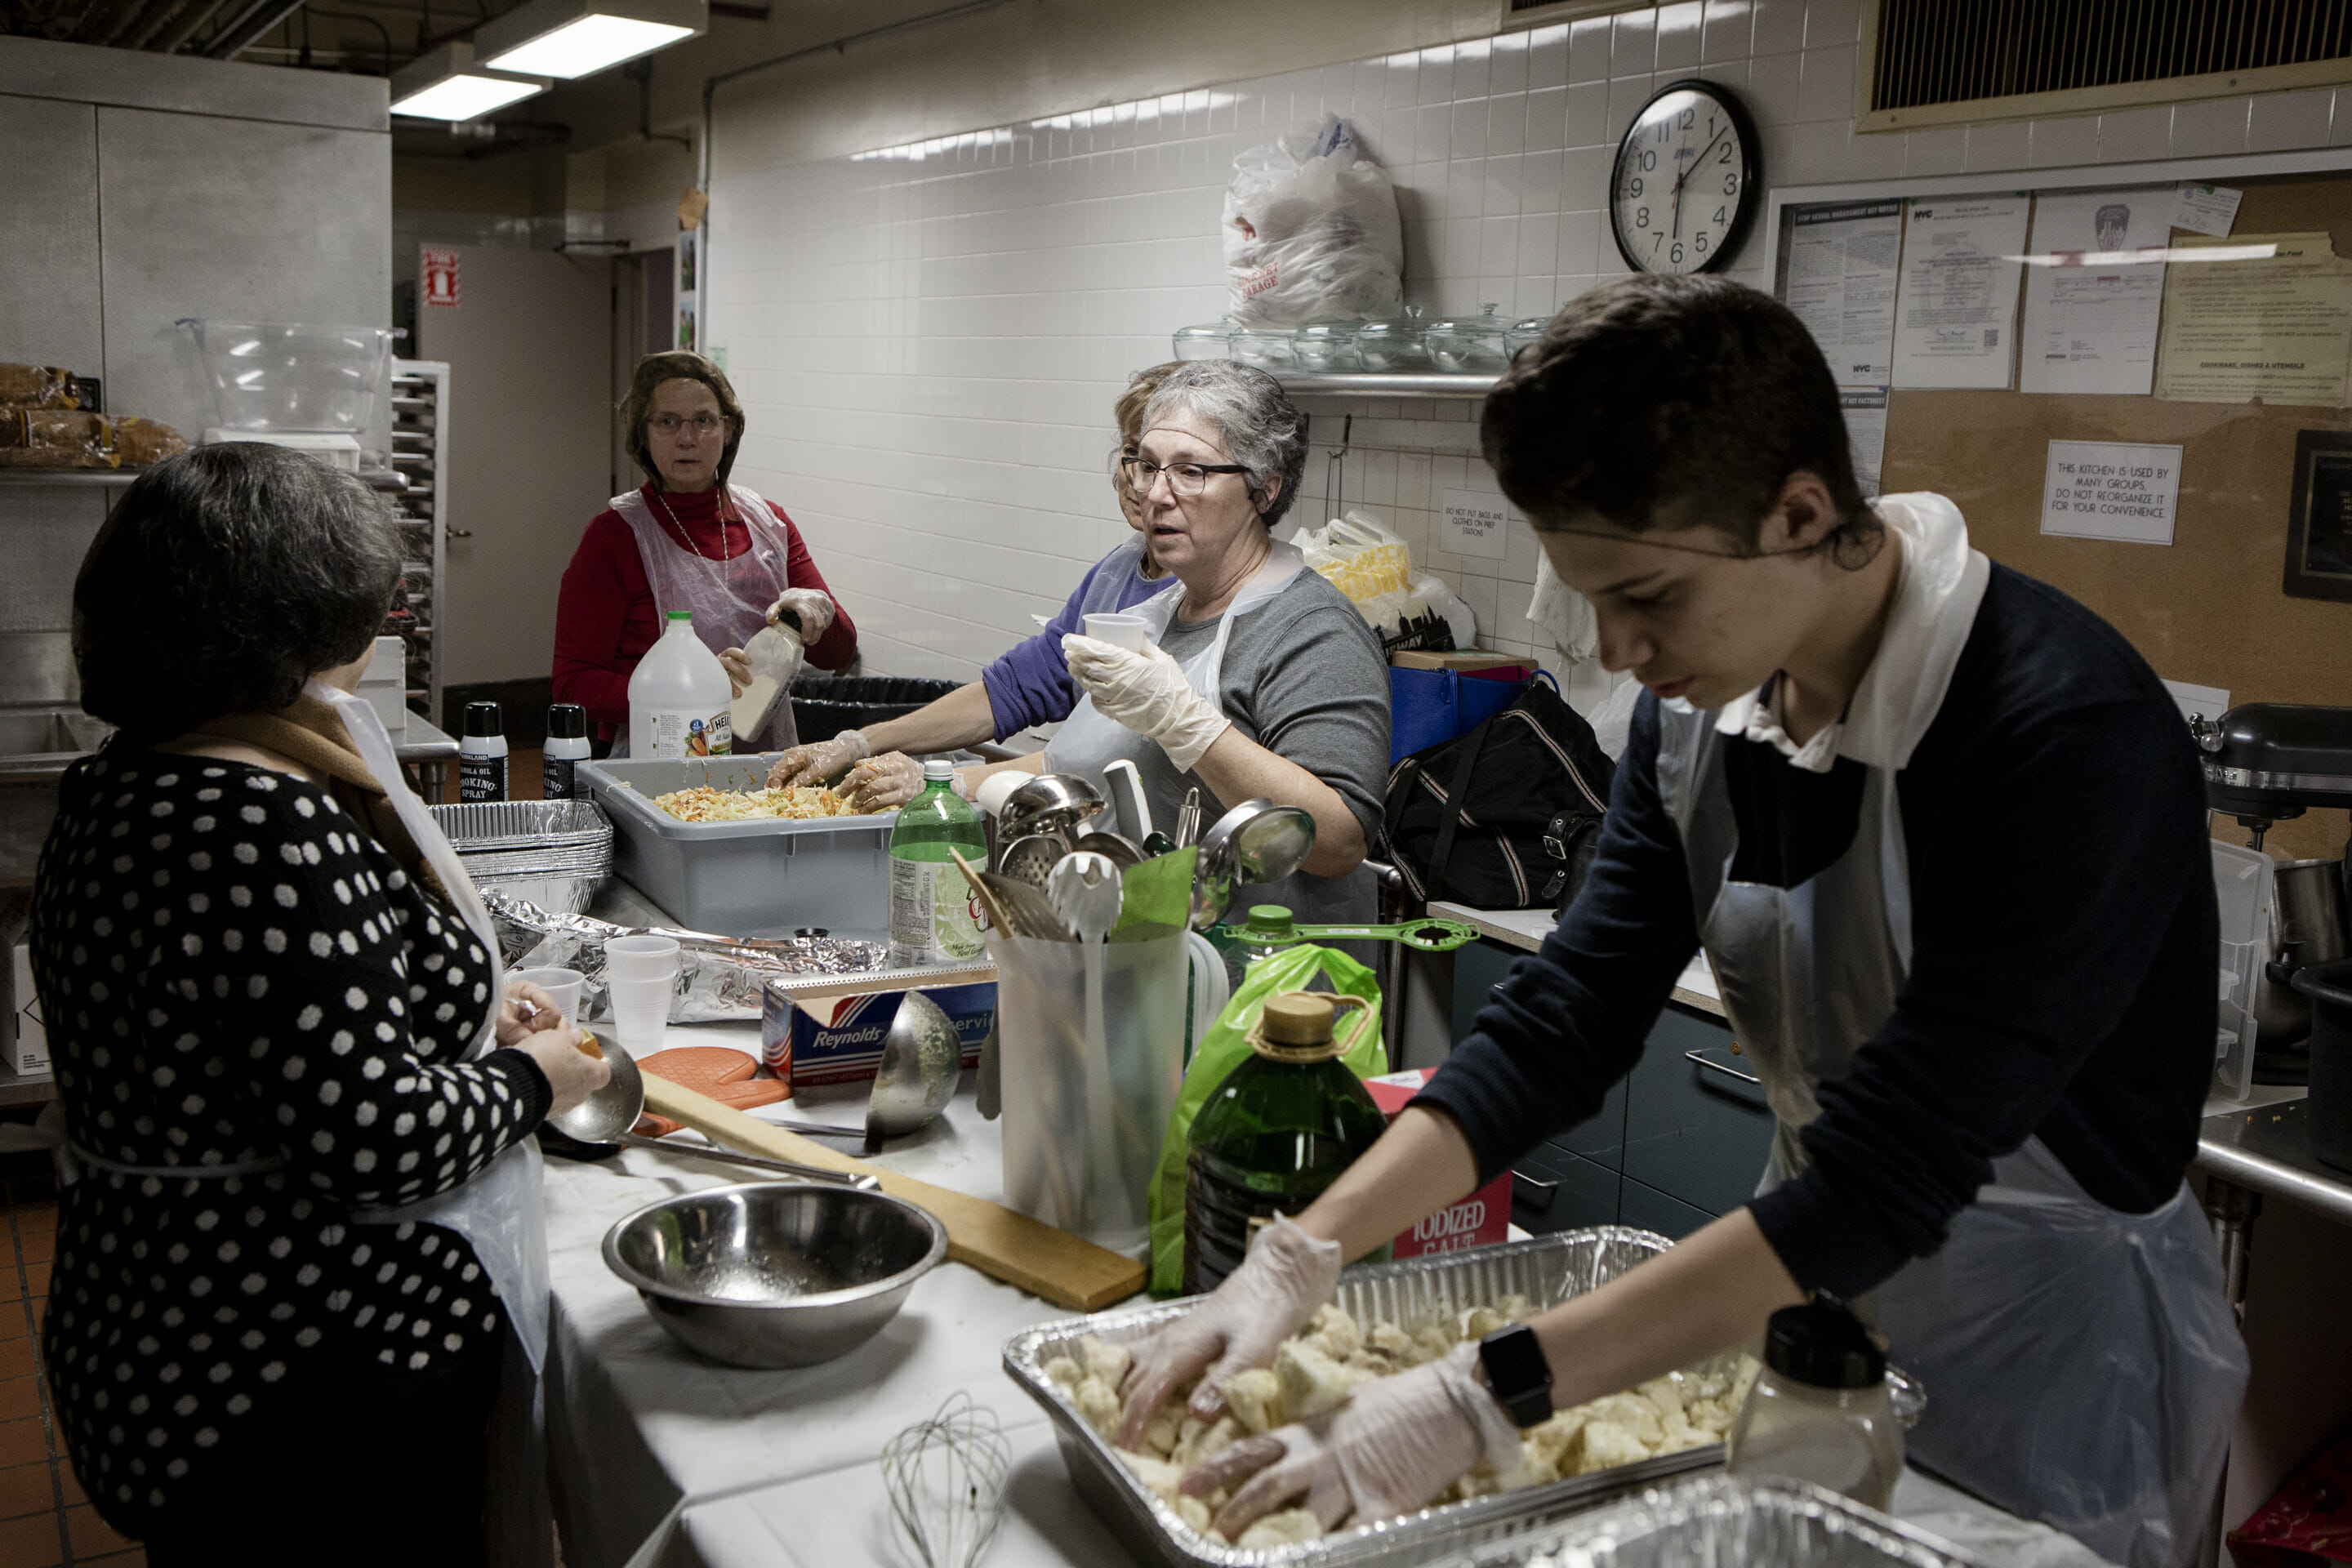 b'nai jeshurun members prepping food